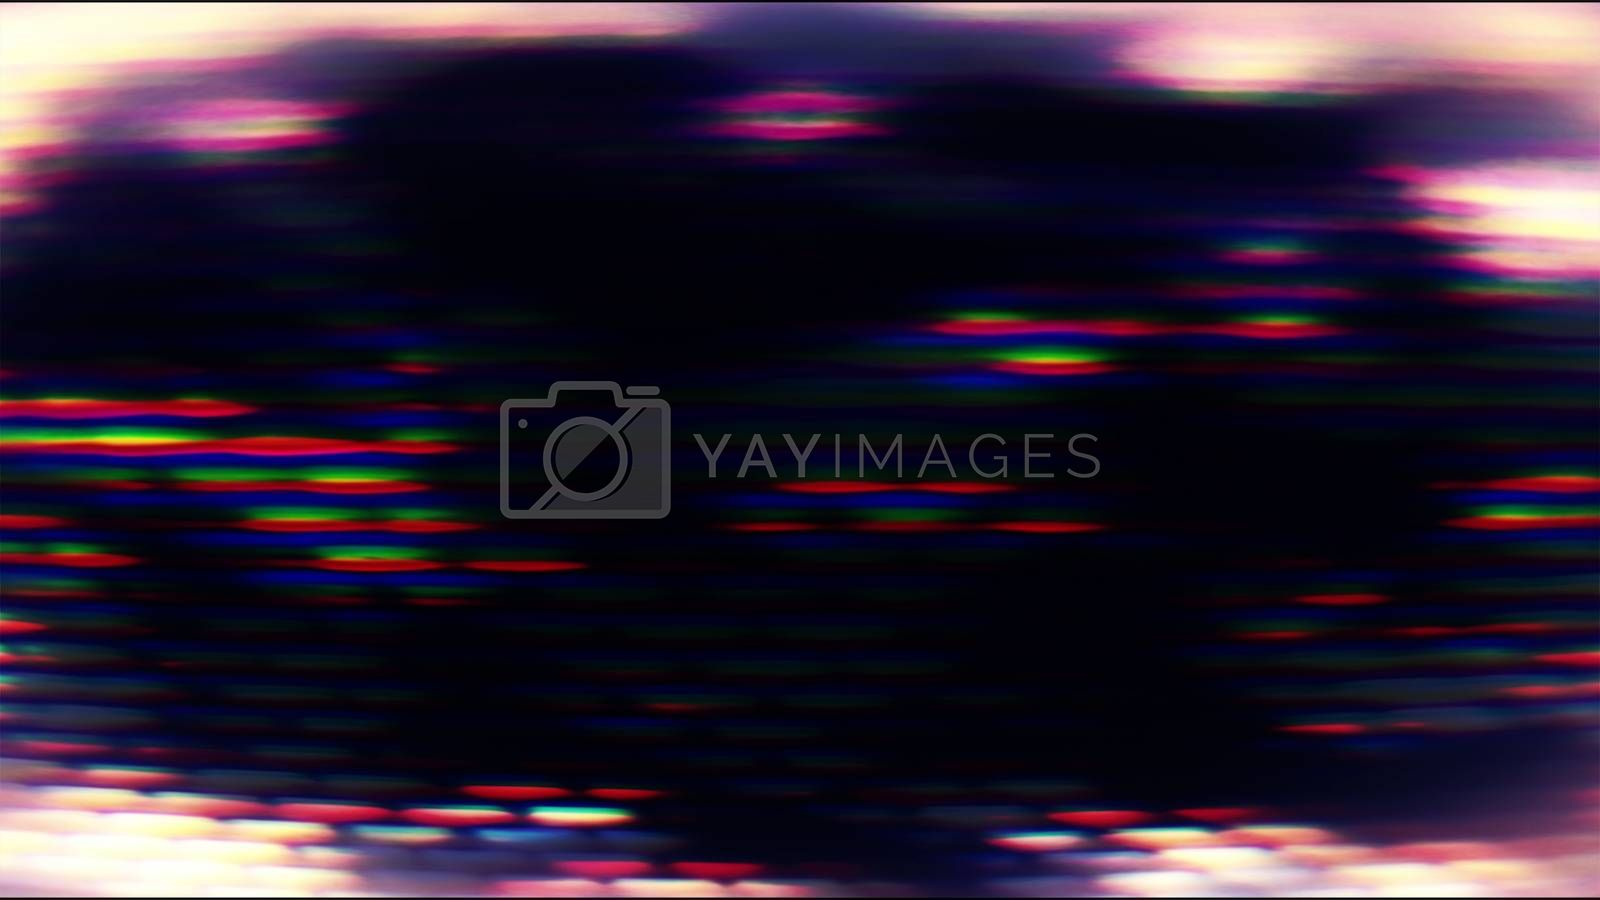 Future Tech 0283 - Futuristic technology screen with abstract forms and digital pixel streaks.